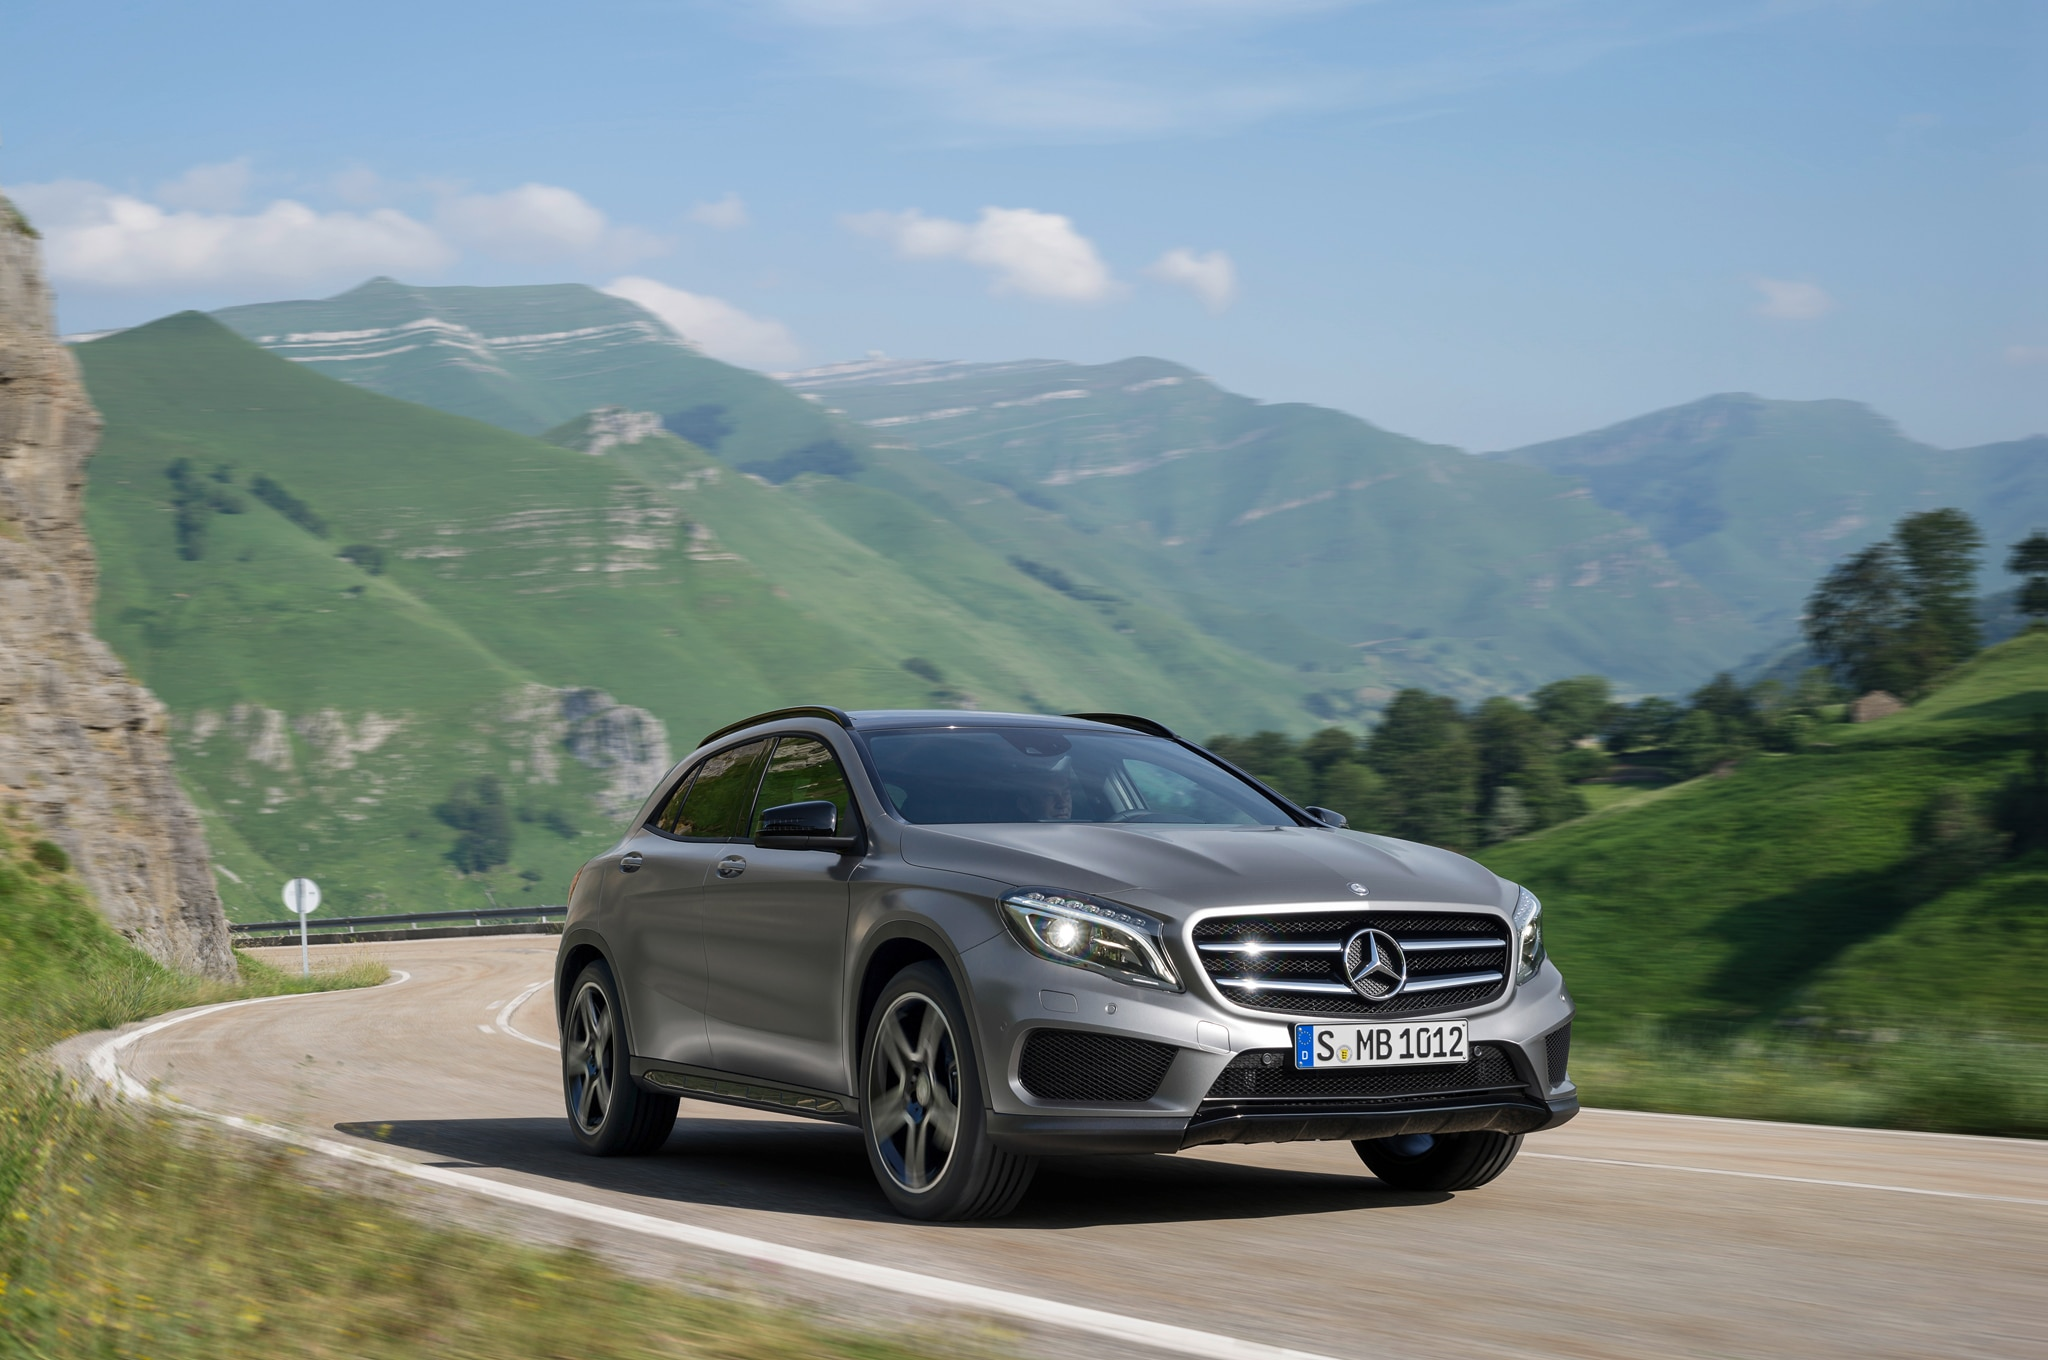 2015 mercedes benz gla class review automobile magazine. Black Bedroom Furniture Sets. Home Design Ideas